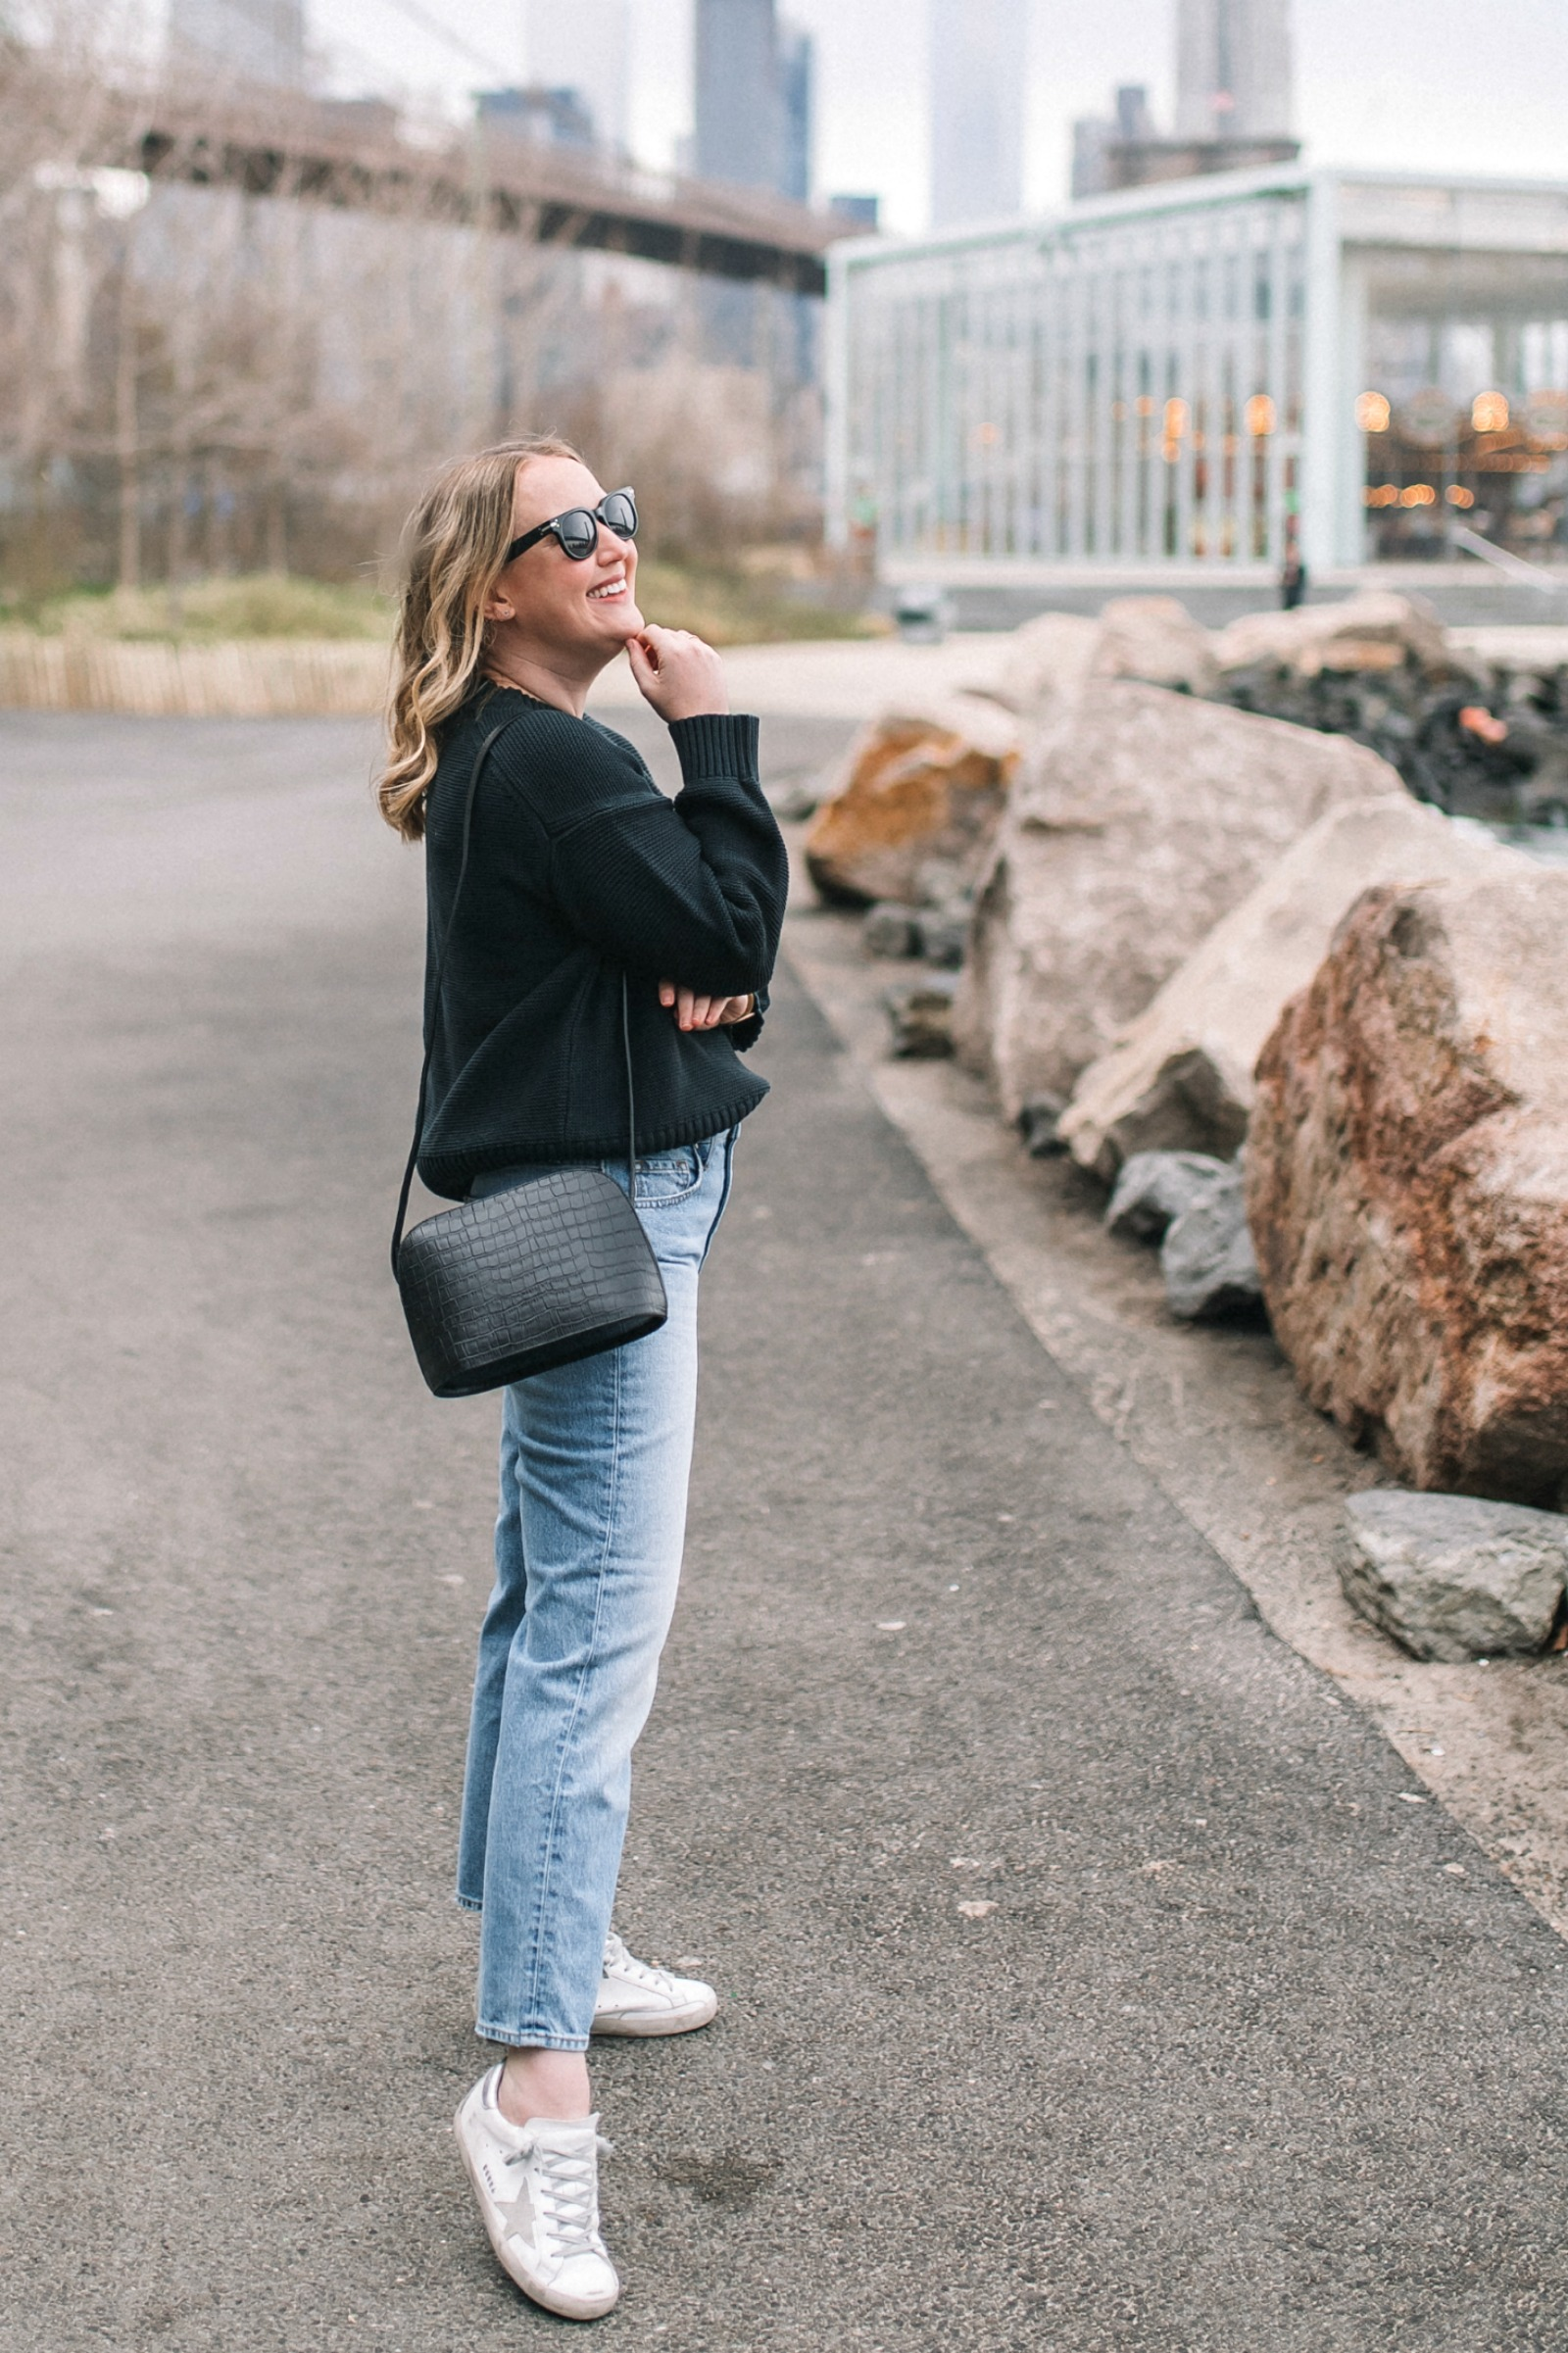 Everlane Link Stich Sweater I wit & whimsy